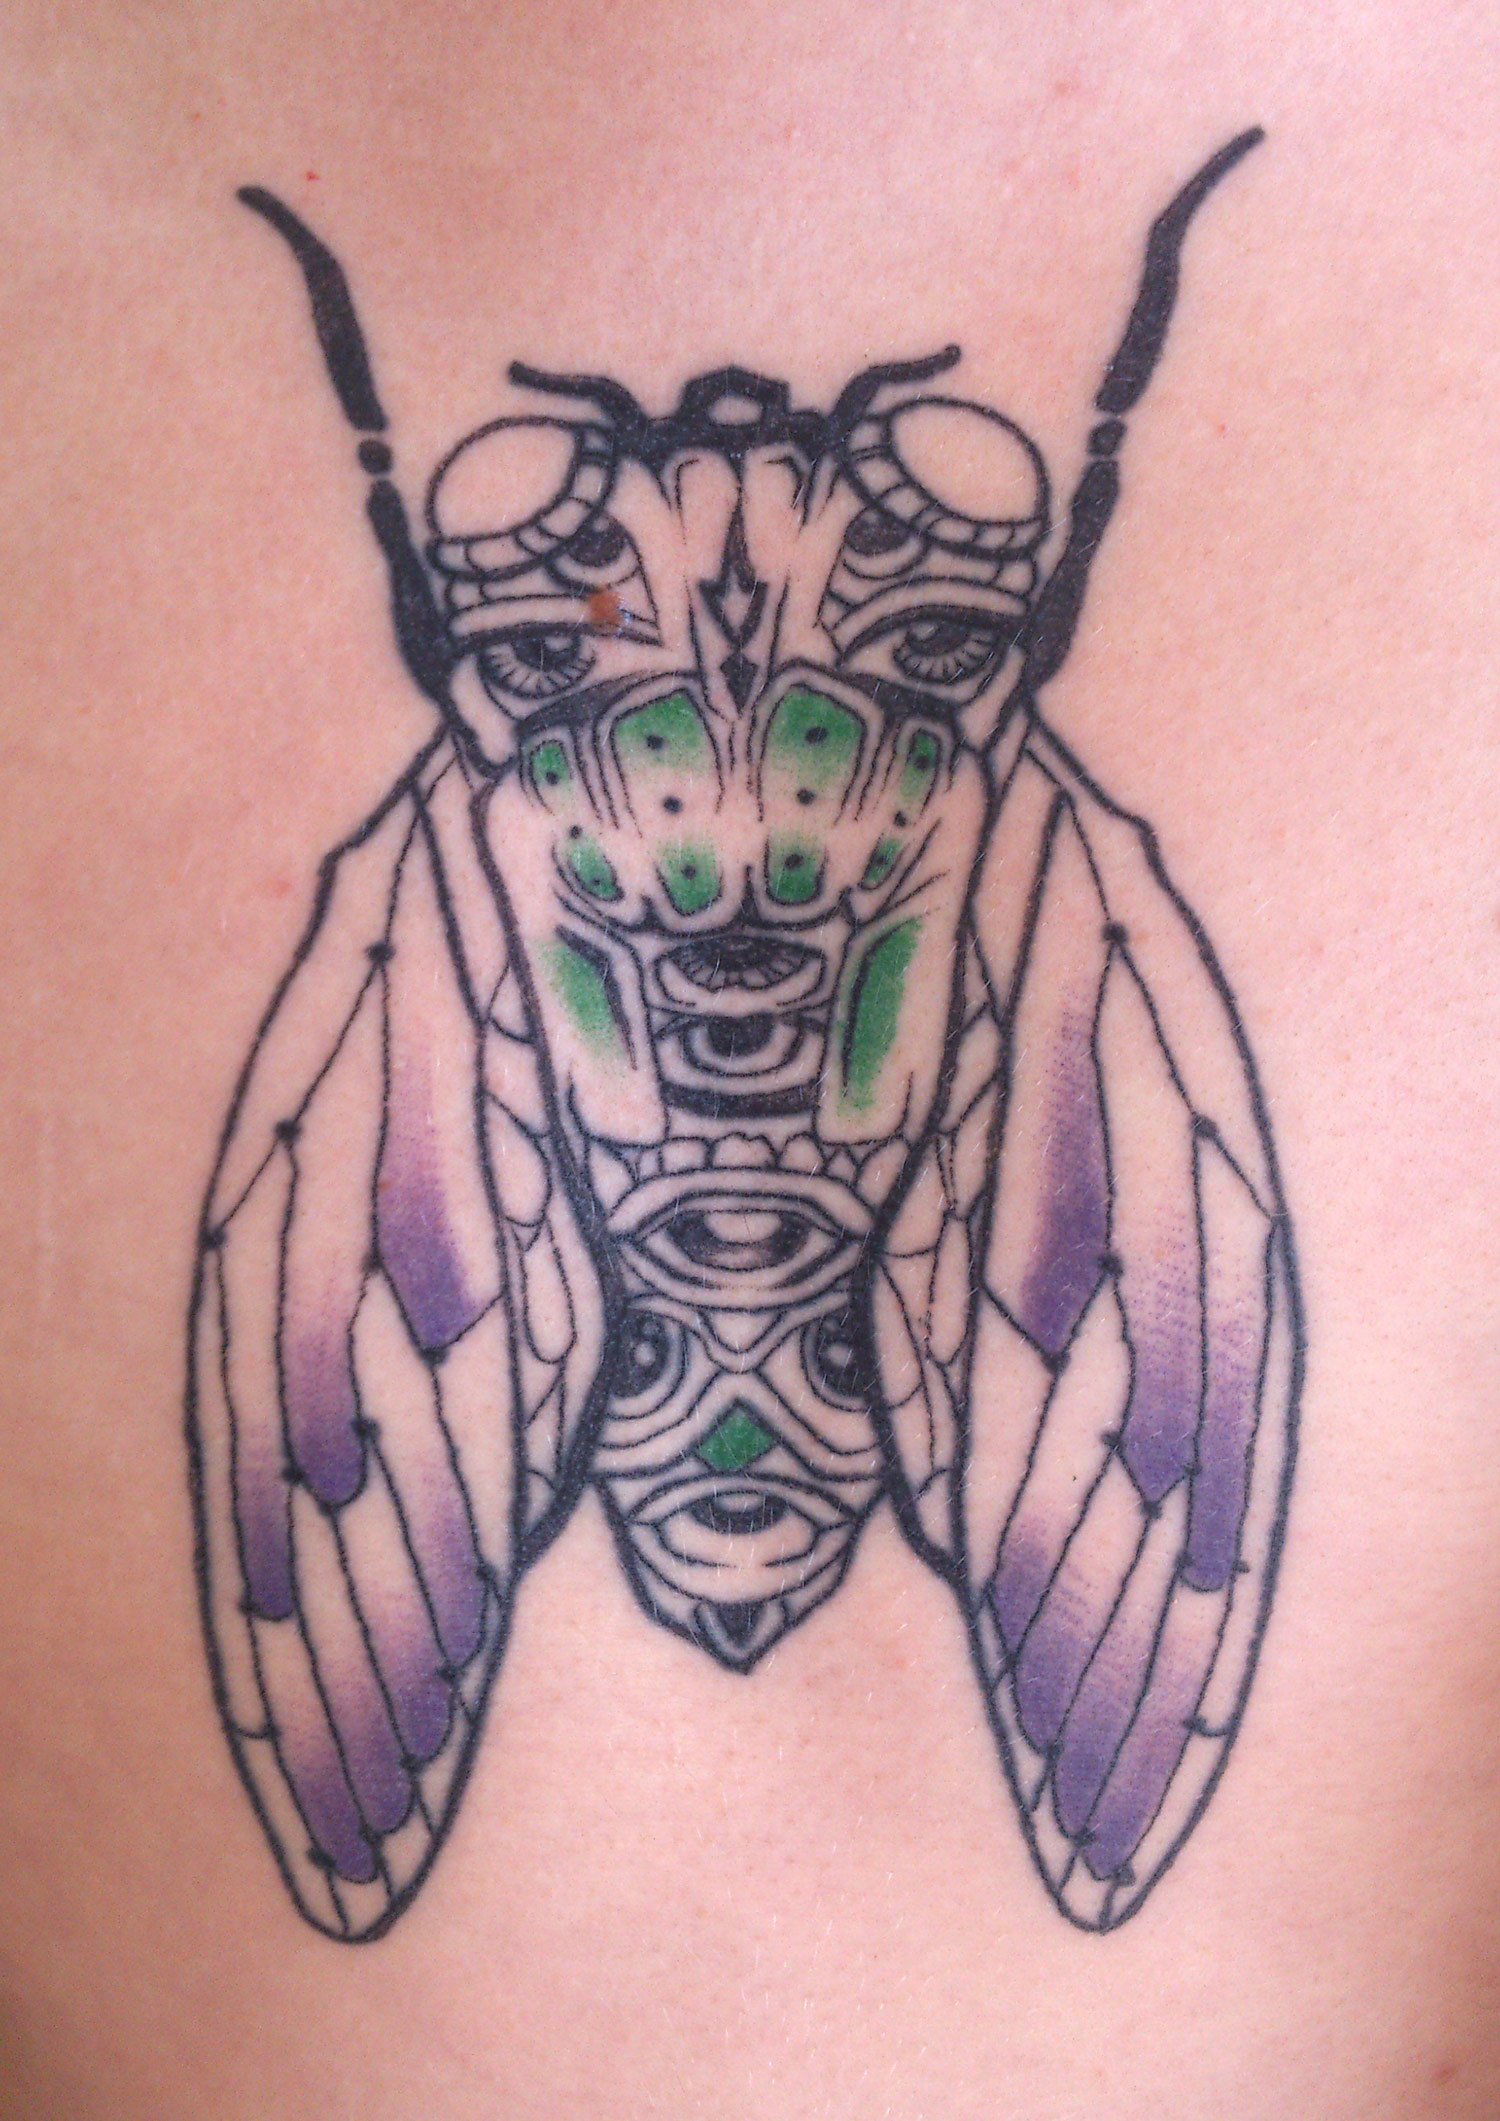 cicada-tattoo-ink-insect-chest-sam-shennan-ud3-sydney-tattoo-designer-in-skin-pretty-colourful-line.jpg